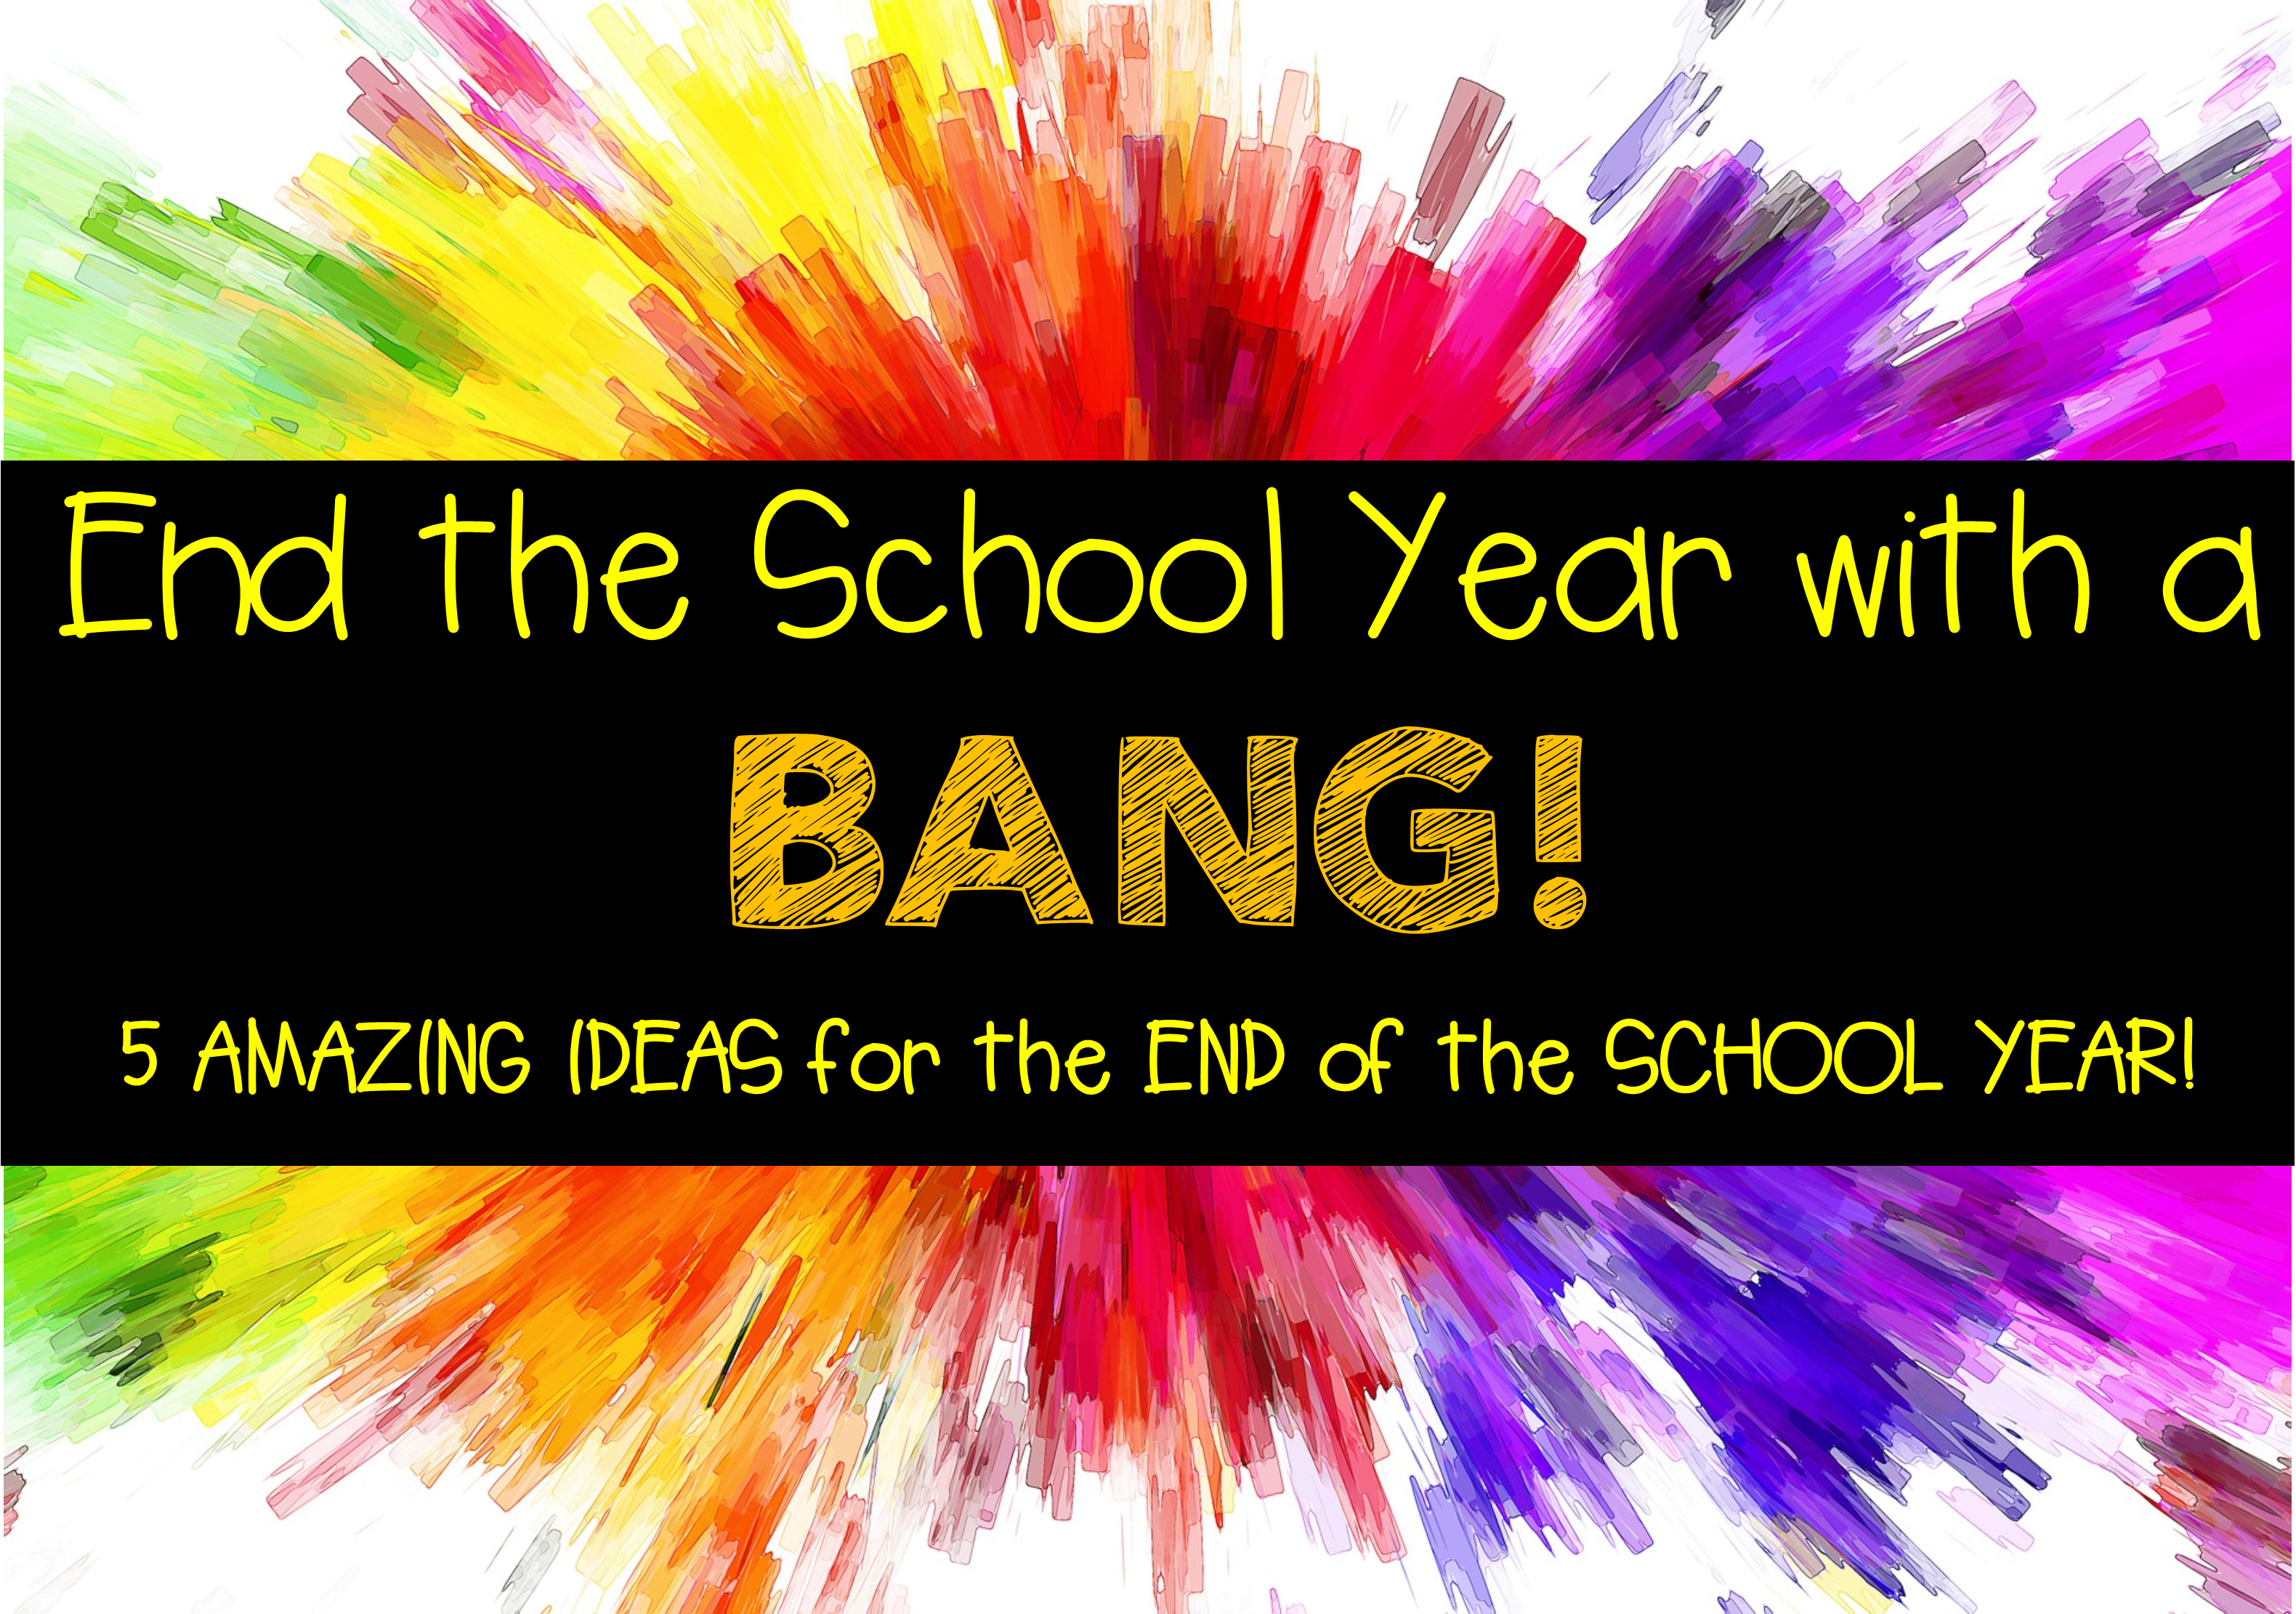 End the School Year with a BANG!!